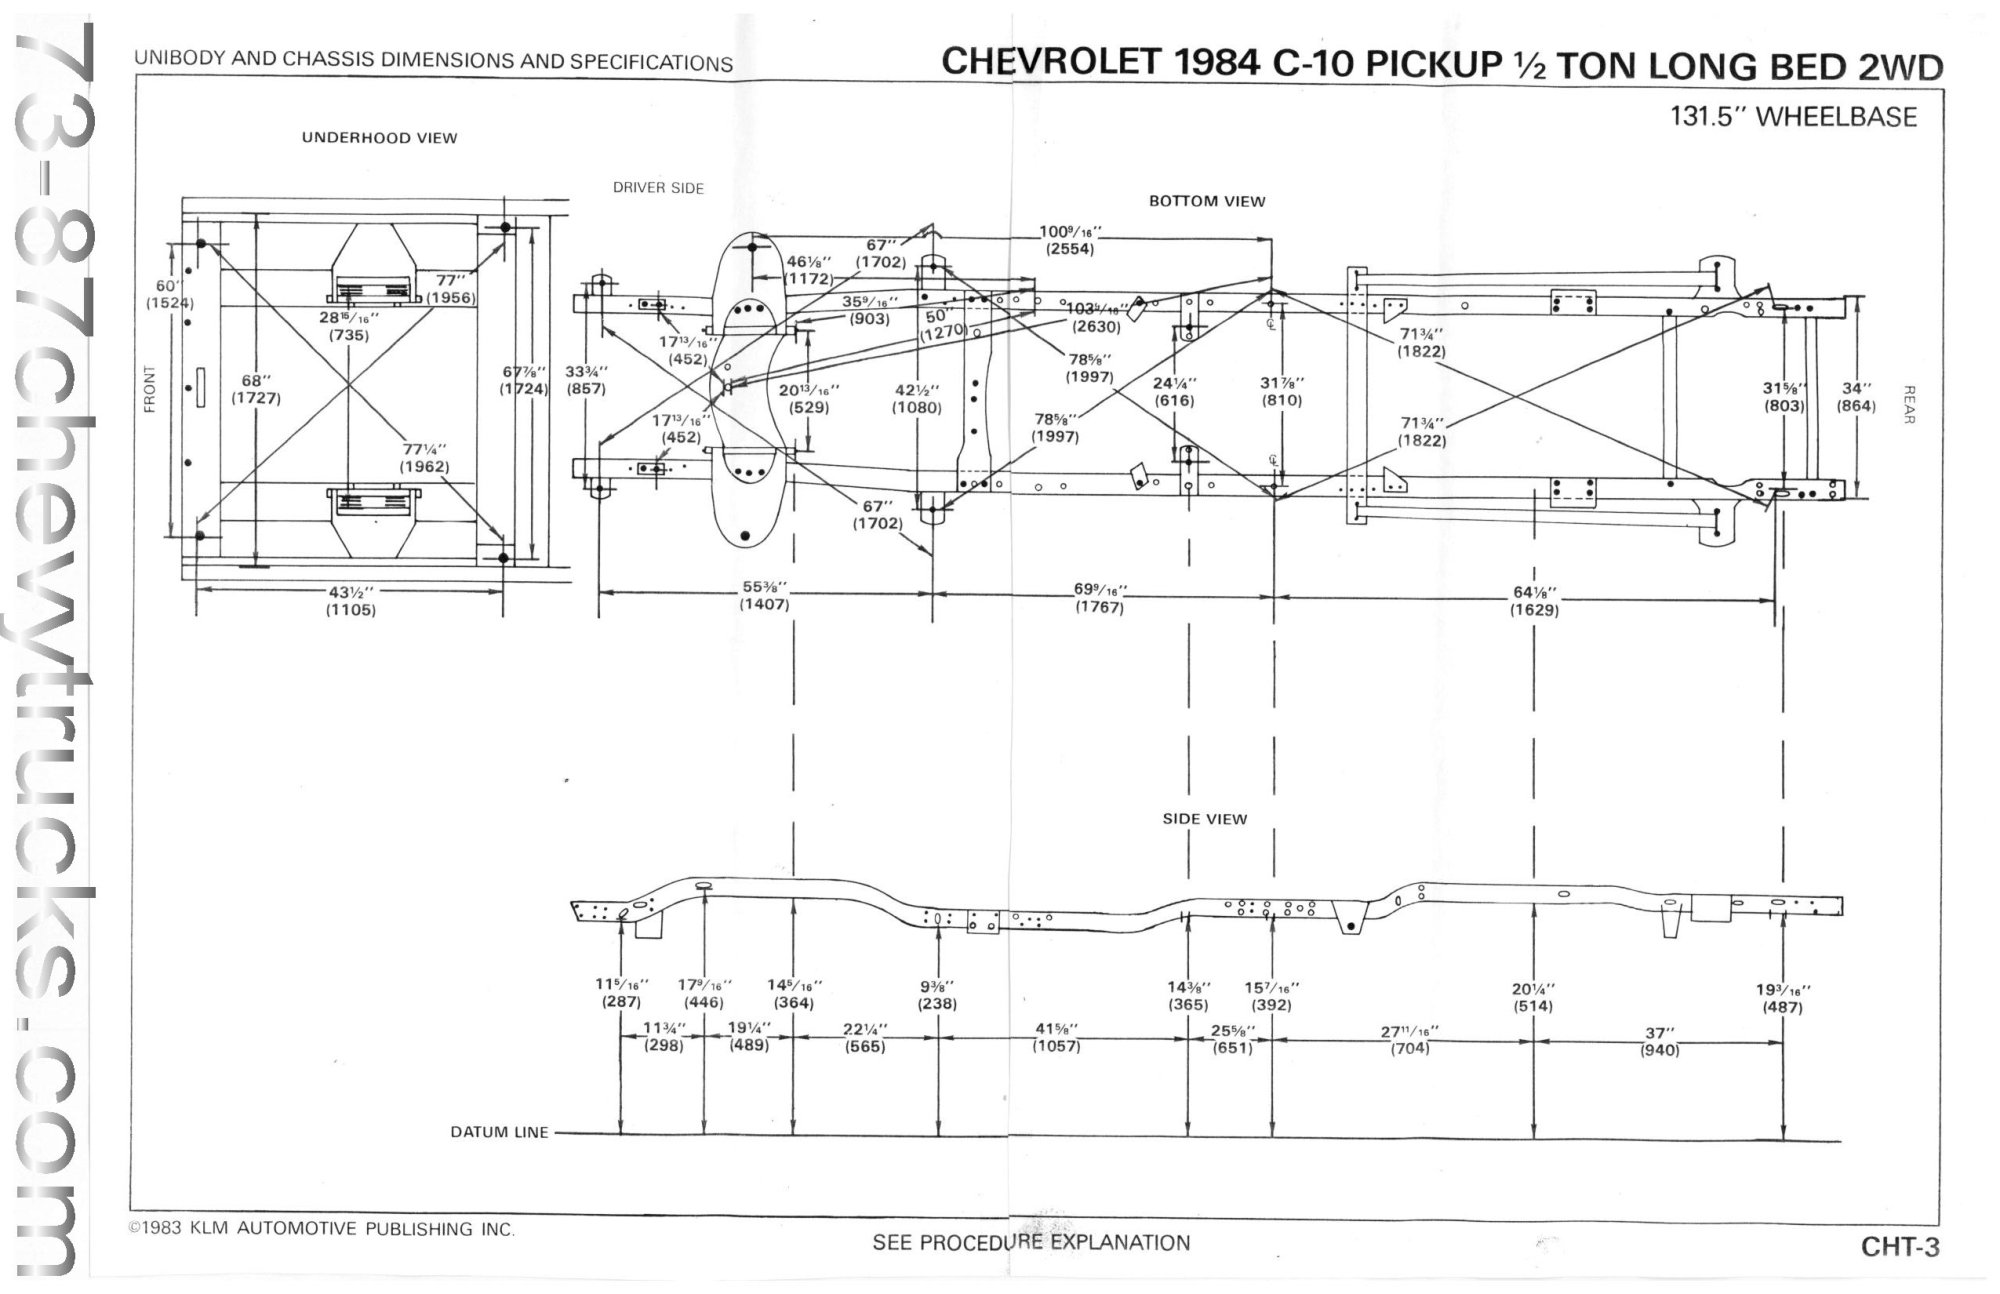 hight resolution of 87 chevy truck frame diagram wiring schematic electrical drawing 1986 chevy c10 wiring harness diagram